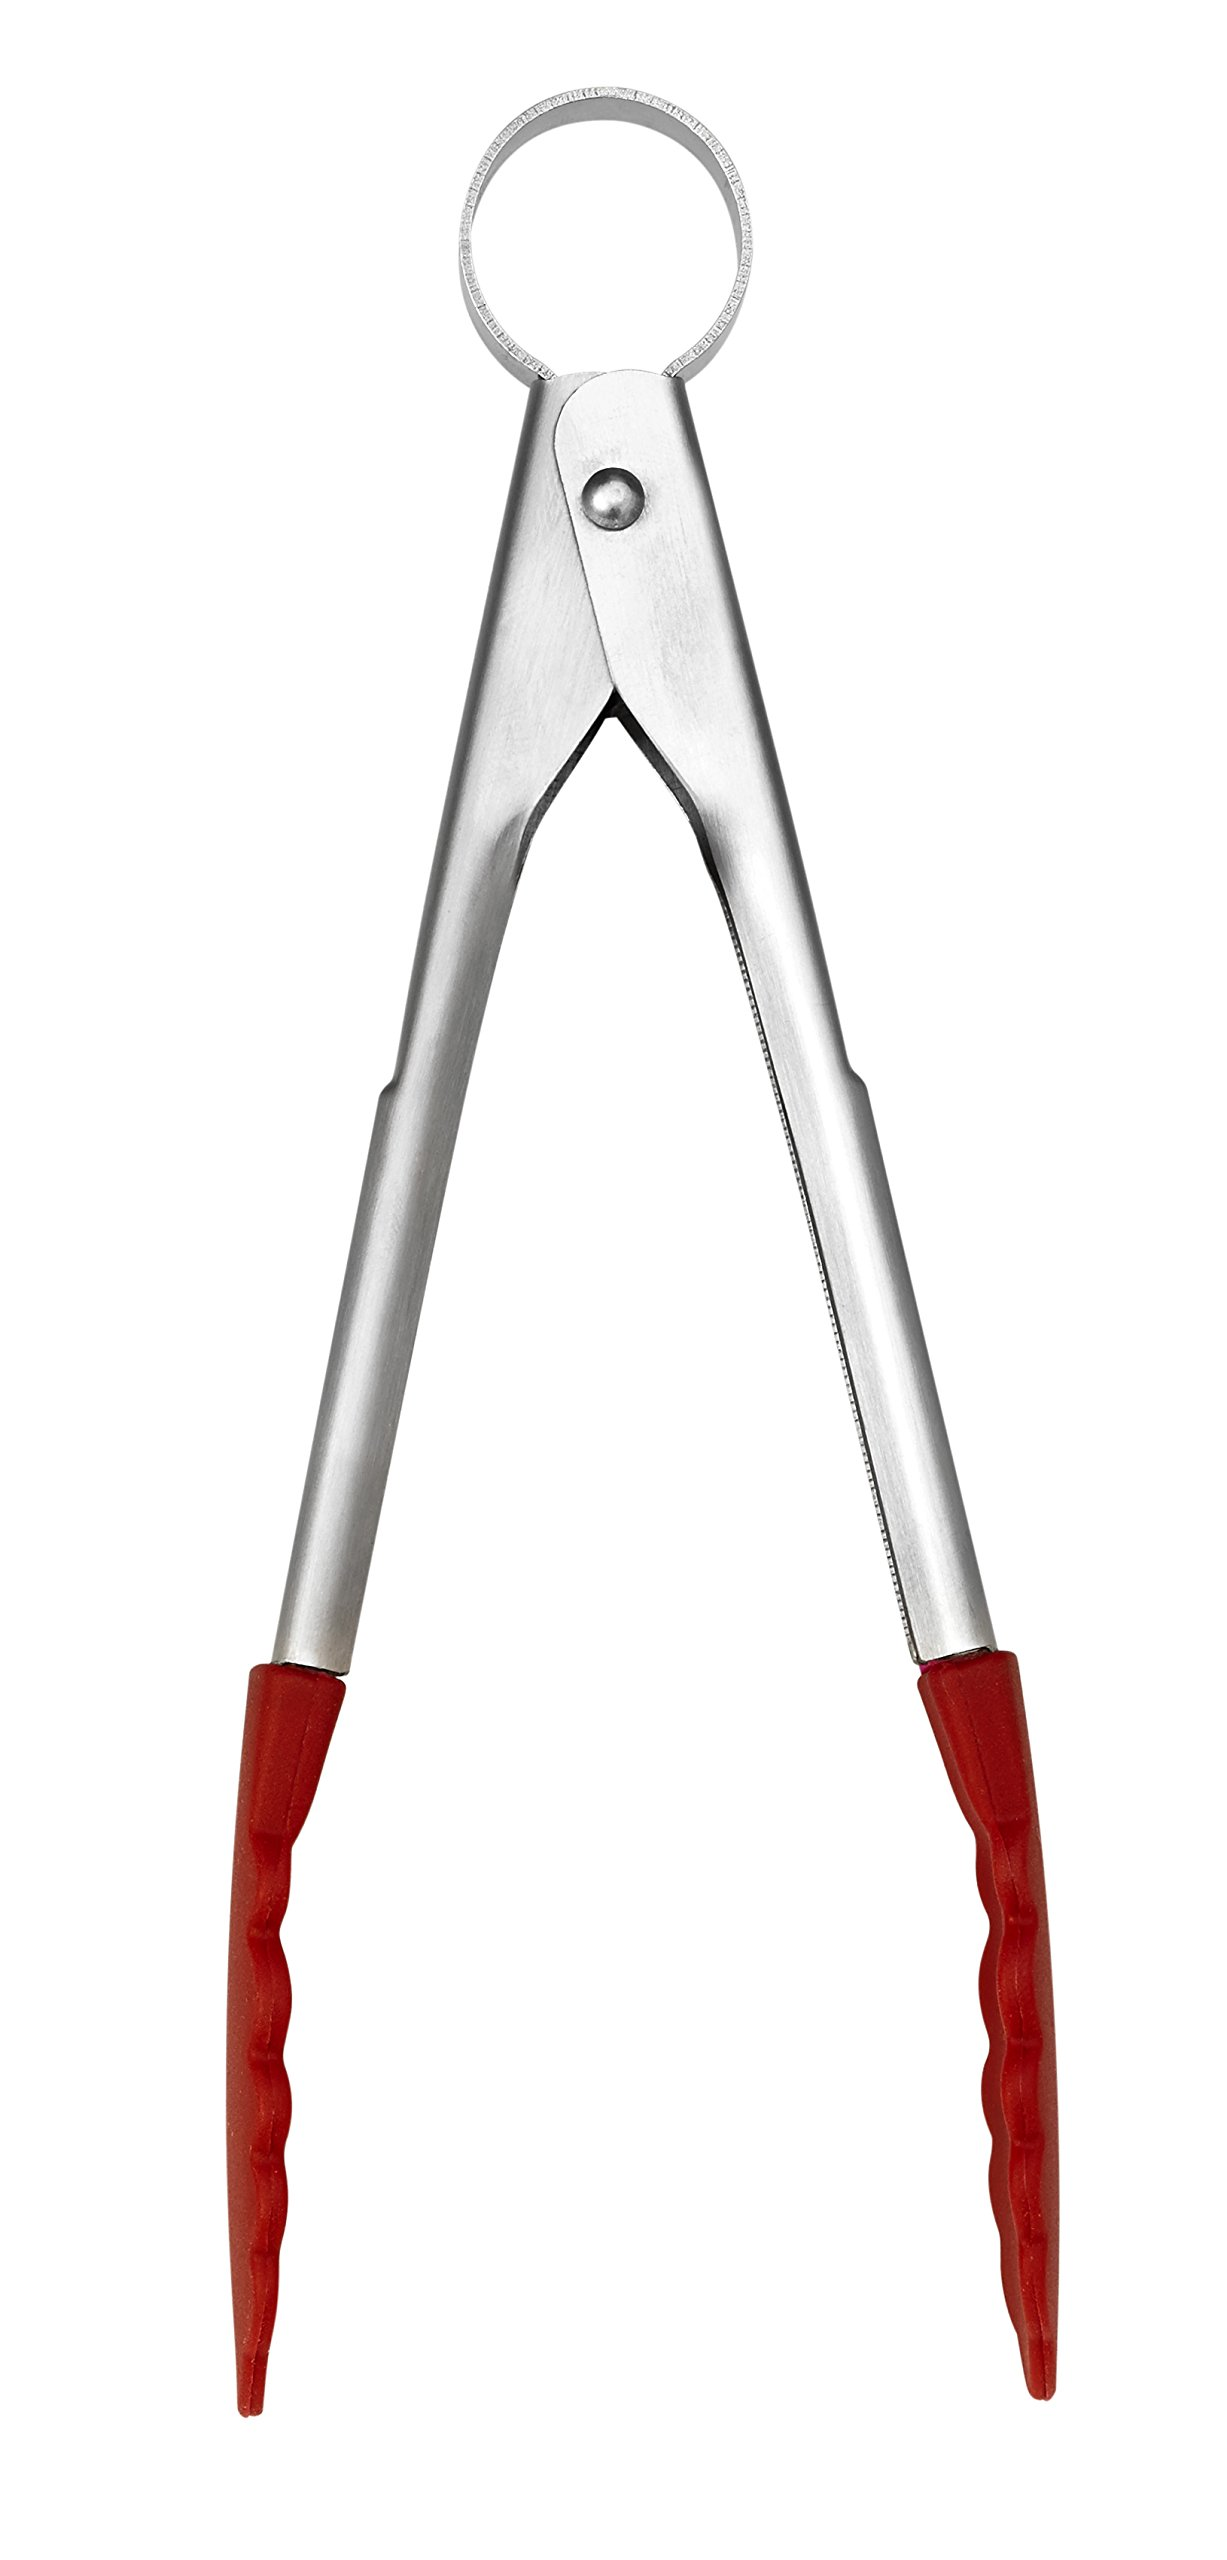 Cuisipro Stainless Steel Silicone Mini Tongs, 7'', Red